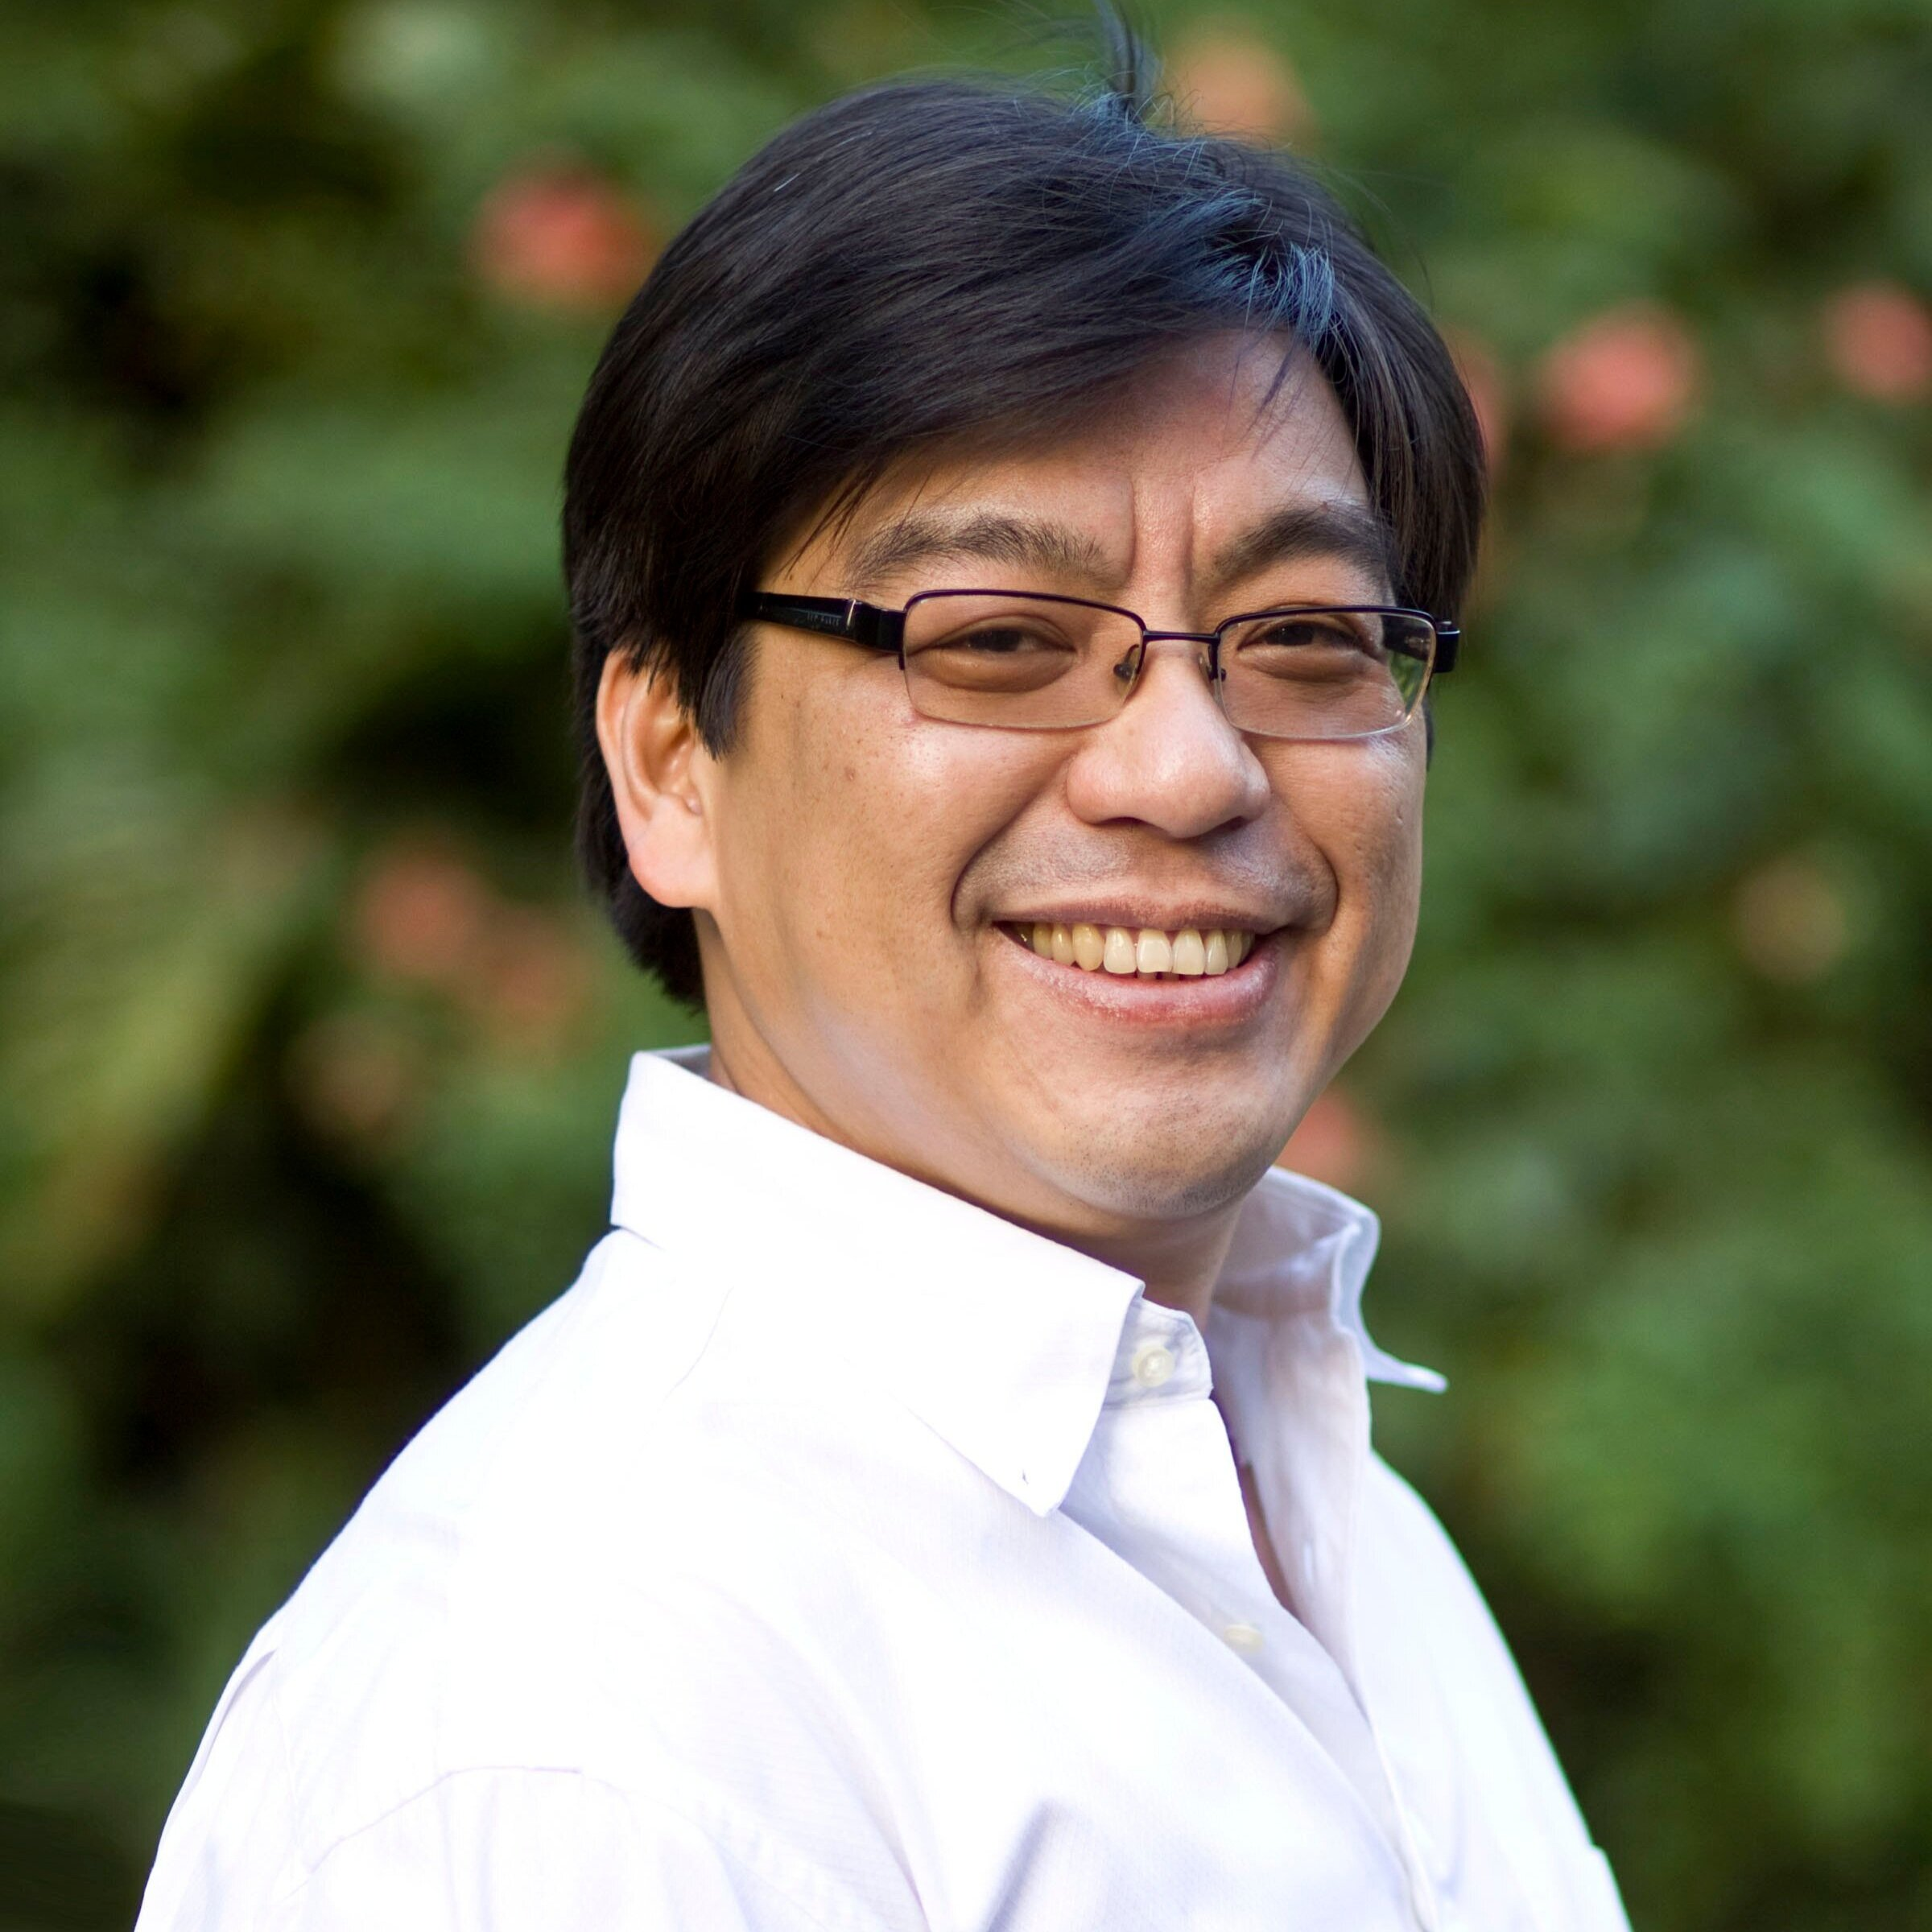 Von Hernandez  (Manila, Philippines) is a multi-awarded Filipino environmental activist who has been campaigning on waste and toxics pollution for more than 25 years. He is the Global Coordinator of the global Break Free from Plastic Movement, consisting of more than 8,000 groups and individual supporters worldwide, which have come together to reverse the plastic pollution crisis. Before his current assignment, Von was Global Development Director of Greenpeace International where he oversaw the development and performance of Greenpeace's national and regional offices worldwide. He also served as the Executive Director of Greenpeace Southeast Asia (GPSEA), where he led some of the group's most successful campaigns and programs in Southeast Asia. He co-founded and spearheaded various environmental coalitions and partnerships at the national,regional, and global levels including the Ecowaste Coalition in the Philippines, Waste Not Asia, and the Global Alliance for Incinerator Alternatives (GAIA). In 2003, he was awarded the Goldman Environmental Prize for his work, which led to the first national ban on waste incineration. Von also gained recognition from Time magazine as one of the Heroes for the Environment in 2007. He holds a Masters degree in Public Management from the National University of Singapore.